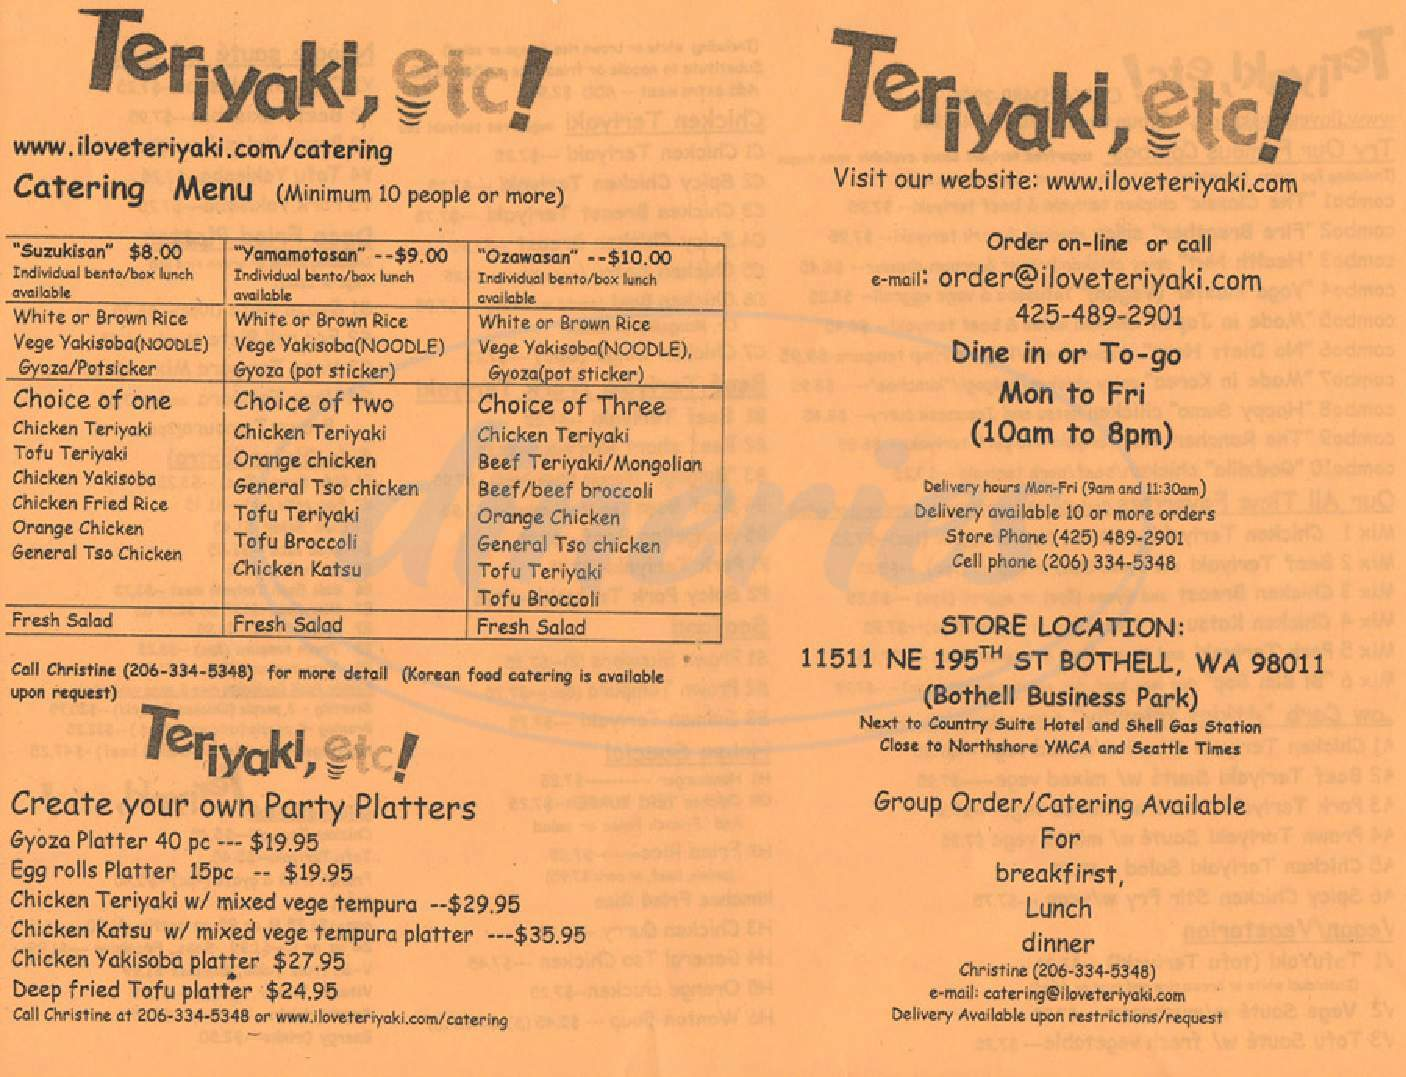 menu for Teriyaki, etc!